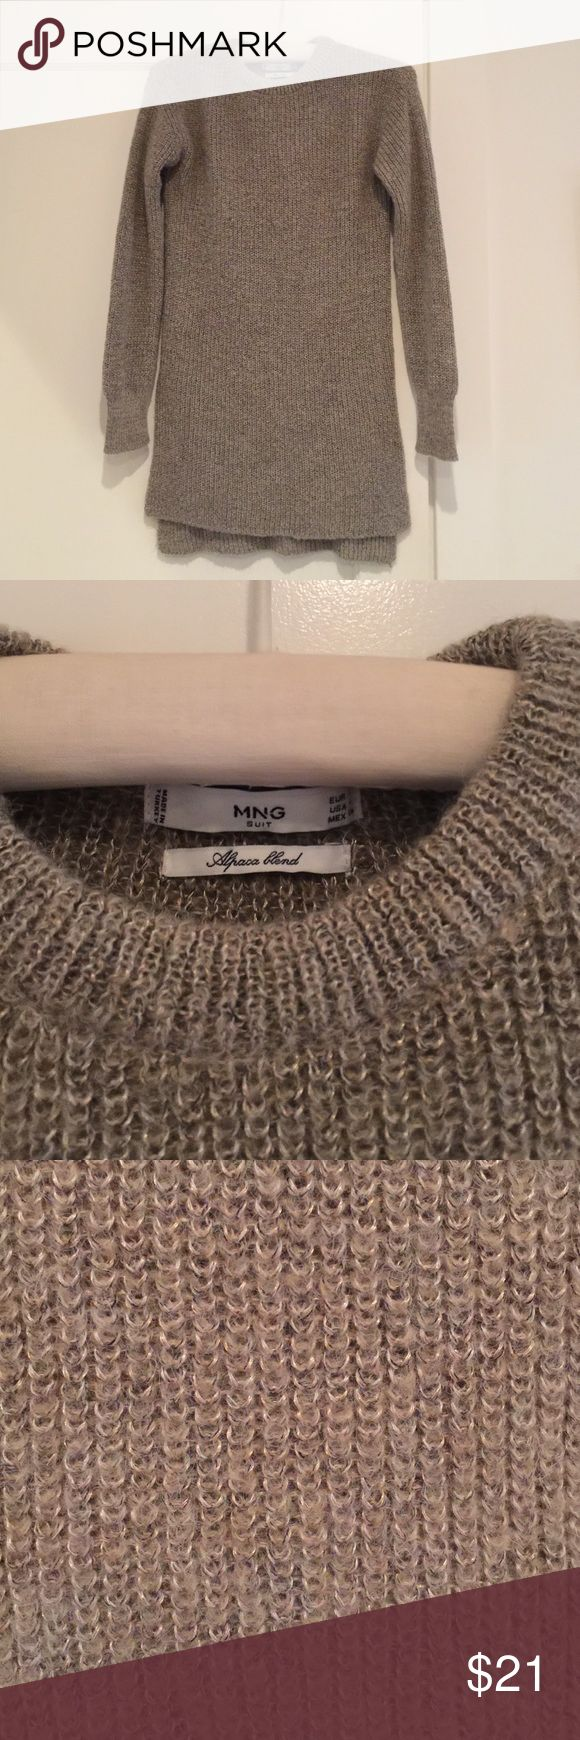 Knit alpaca blend sweater Gray/tan alpaca wool blend sweater. Long style, crew neck. Small side slits starting at waist. Worn once. From mango store international in Spain  (MNG). Europe size small, USA size 4. Mango Sweaters Crew & Scoop Necks